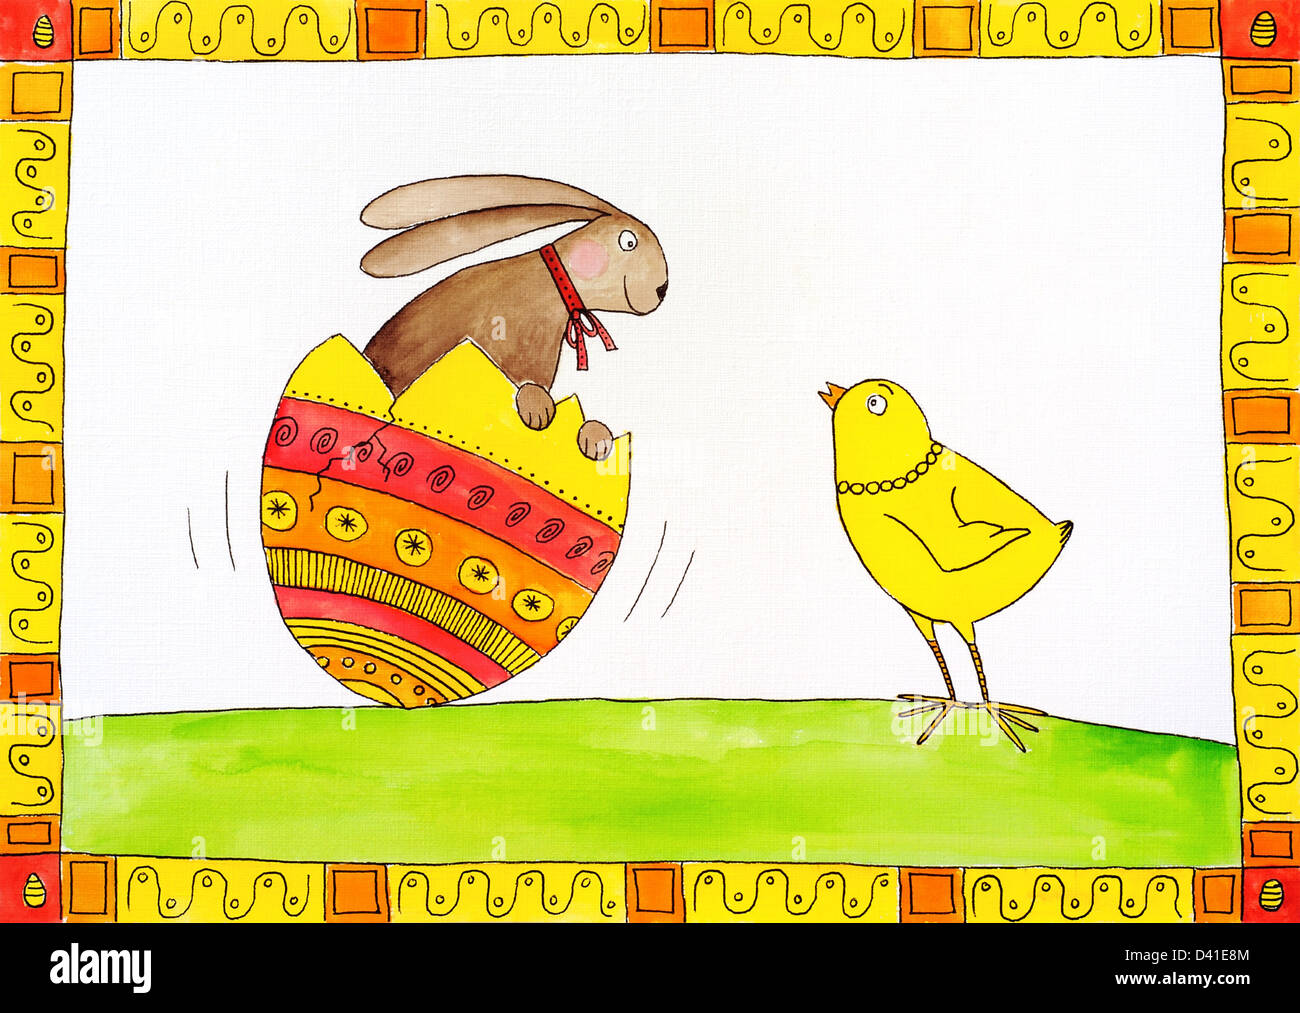 Easter card, child's drawing, watercolor painting on canvas paper - Stock Image